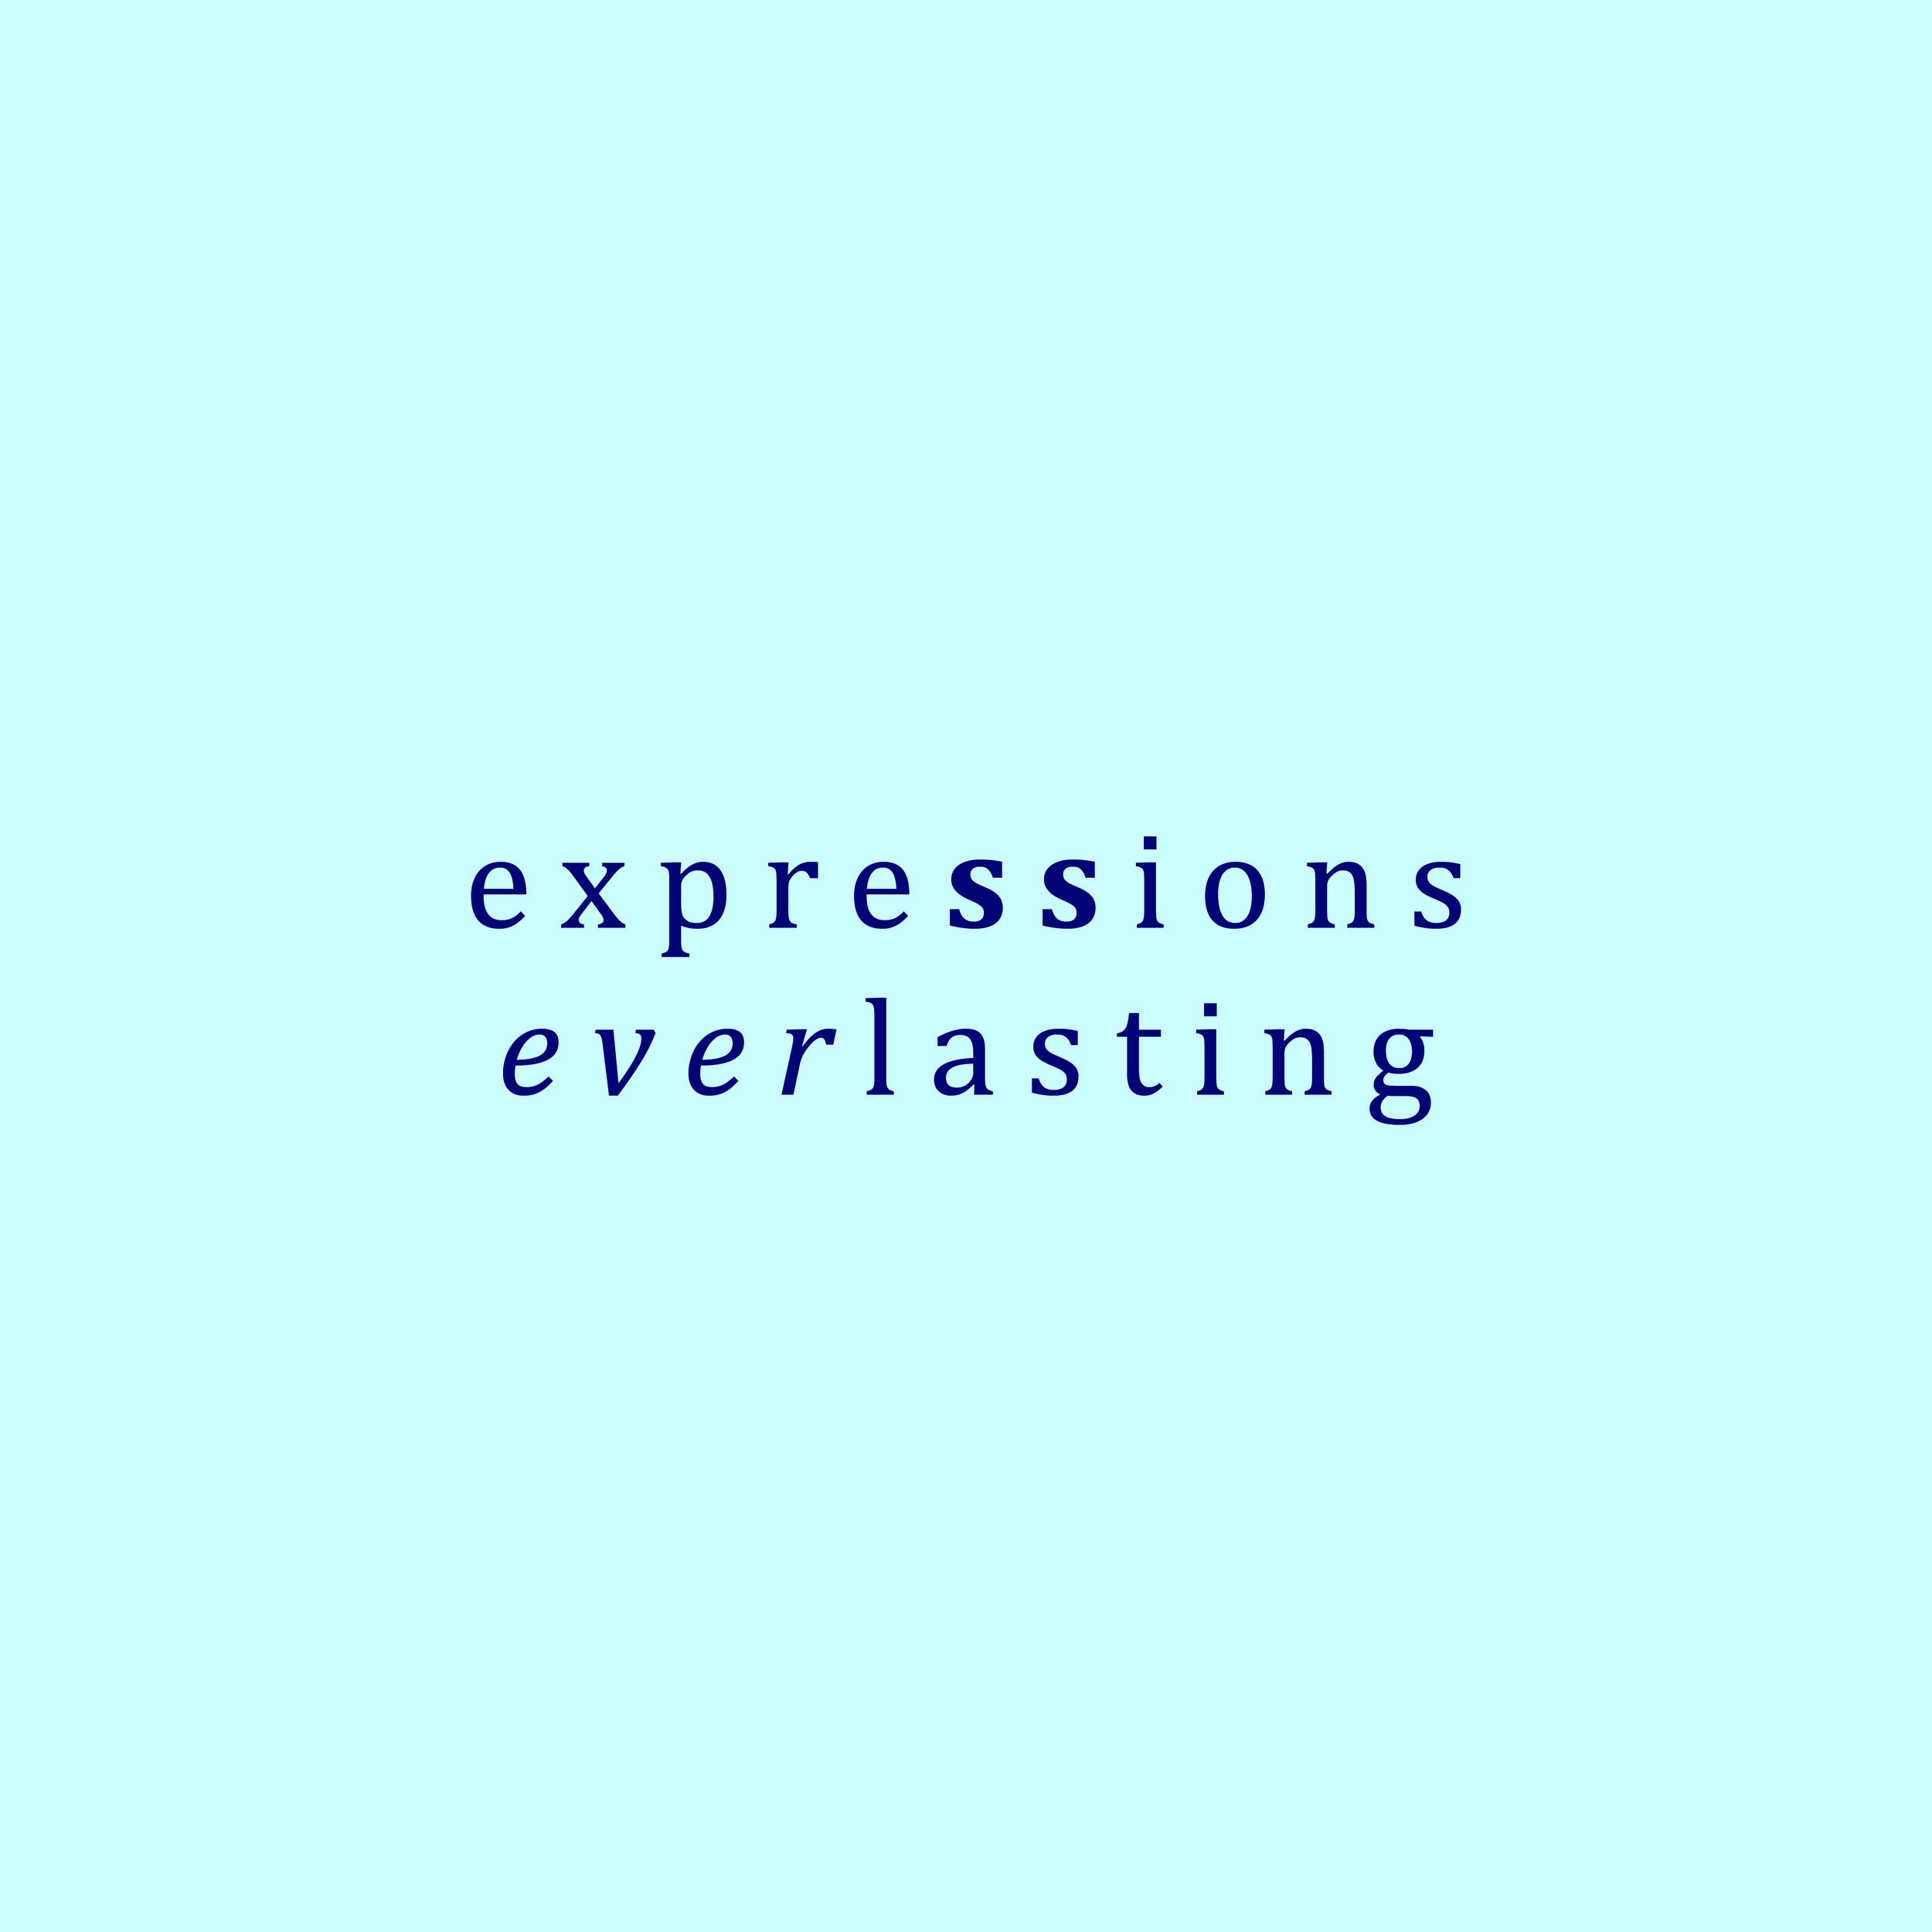 Expressions everlasting